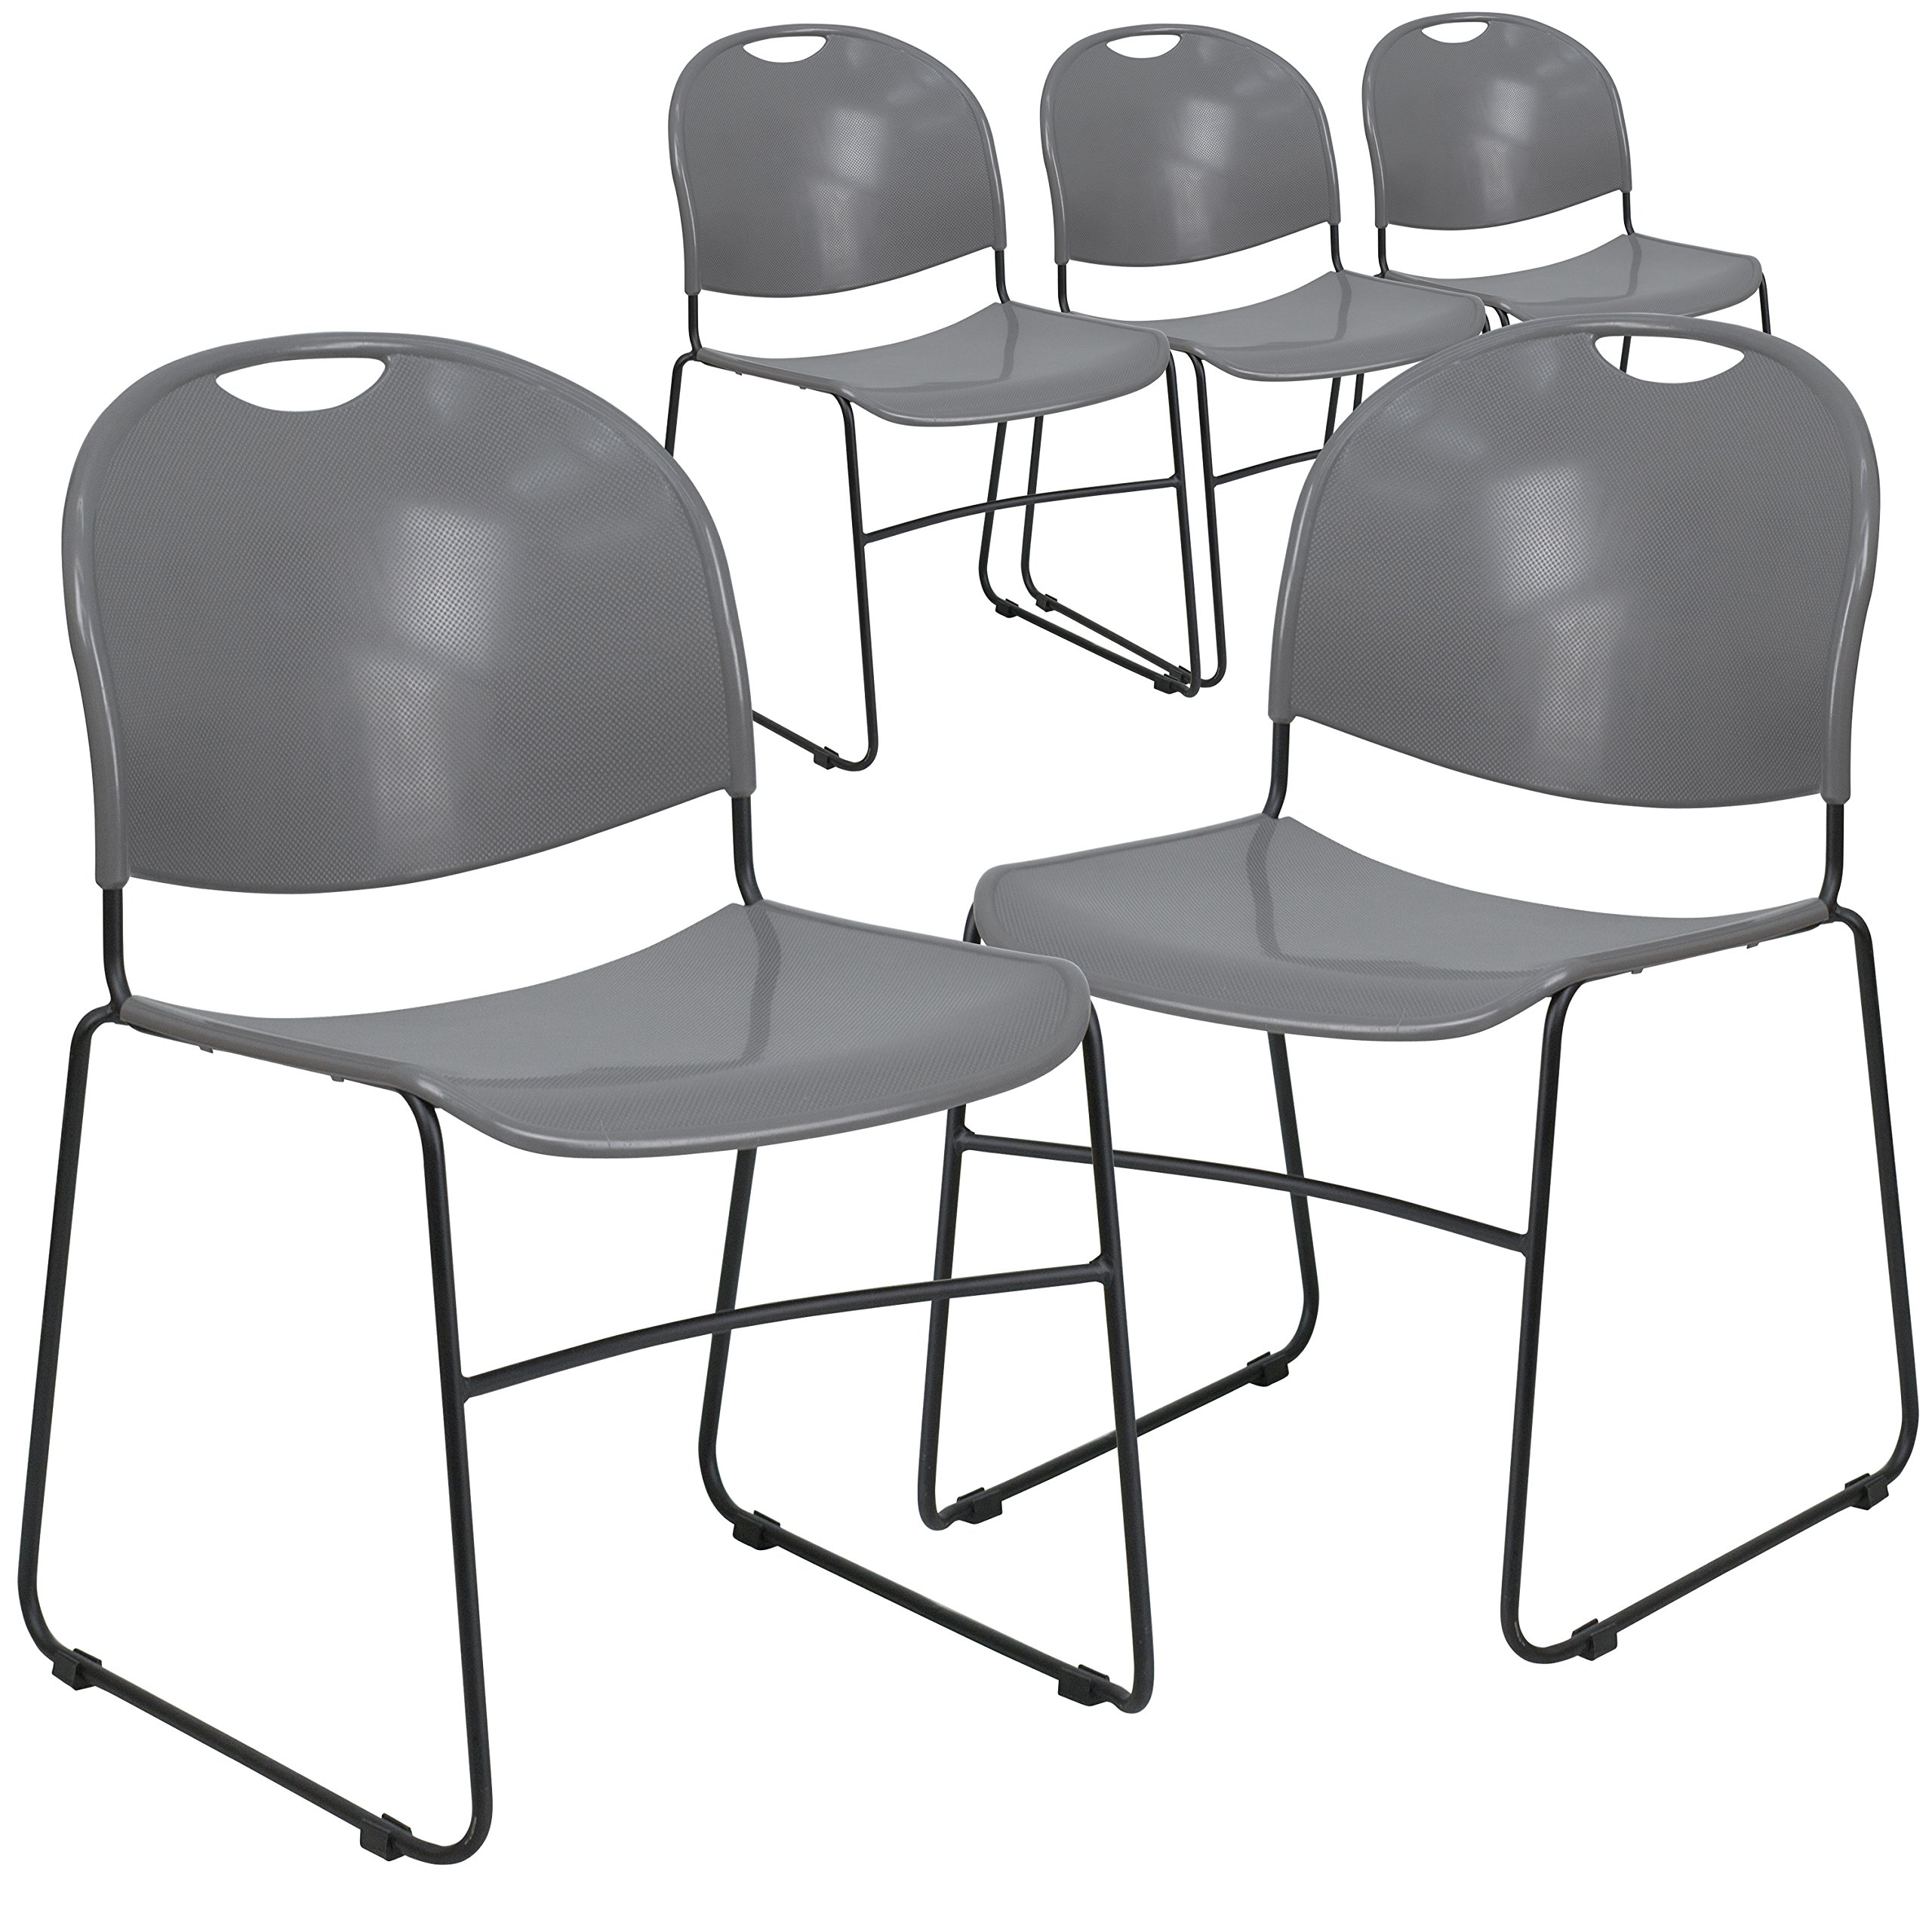 Flash Furniture 5 Pk. HERCULES Series 880 lb. Capacity Gray Ultra Compact Stack Chair with Black Frame